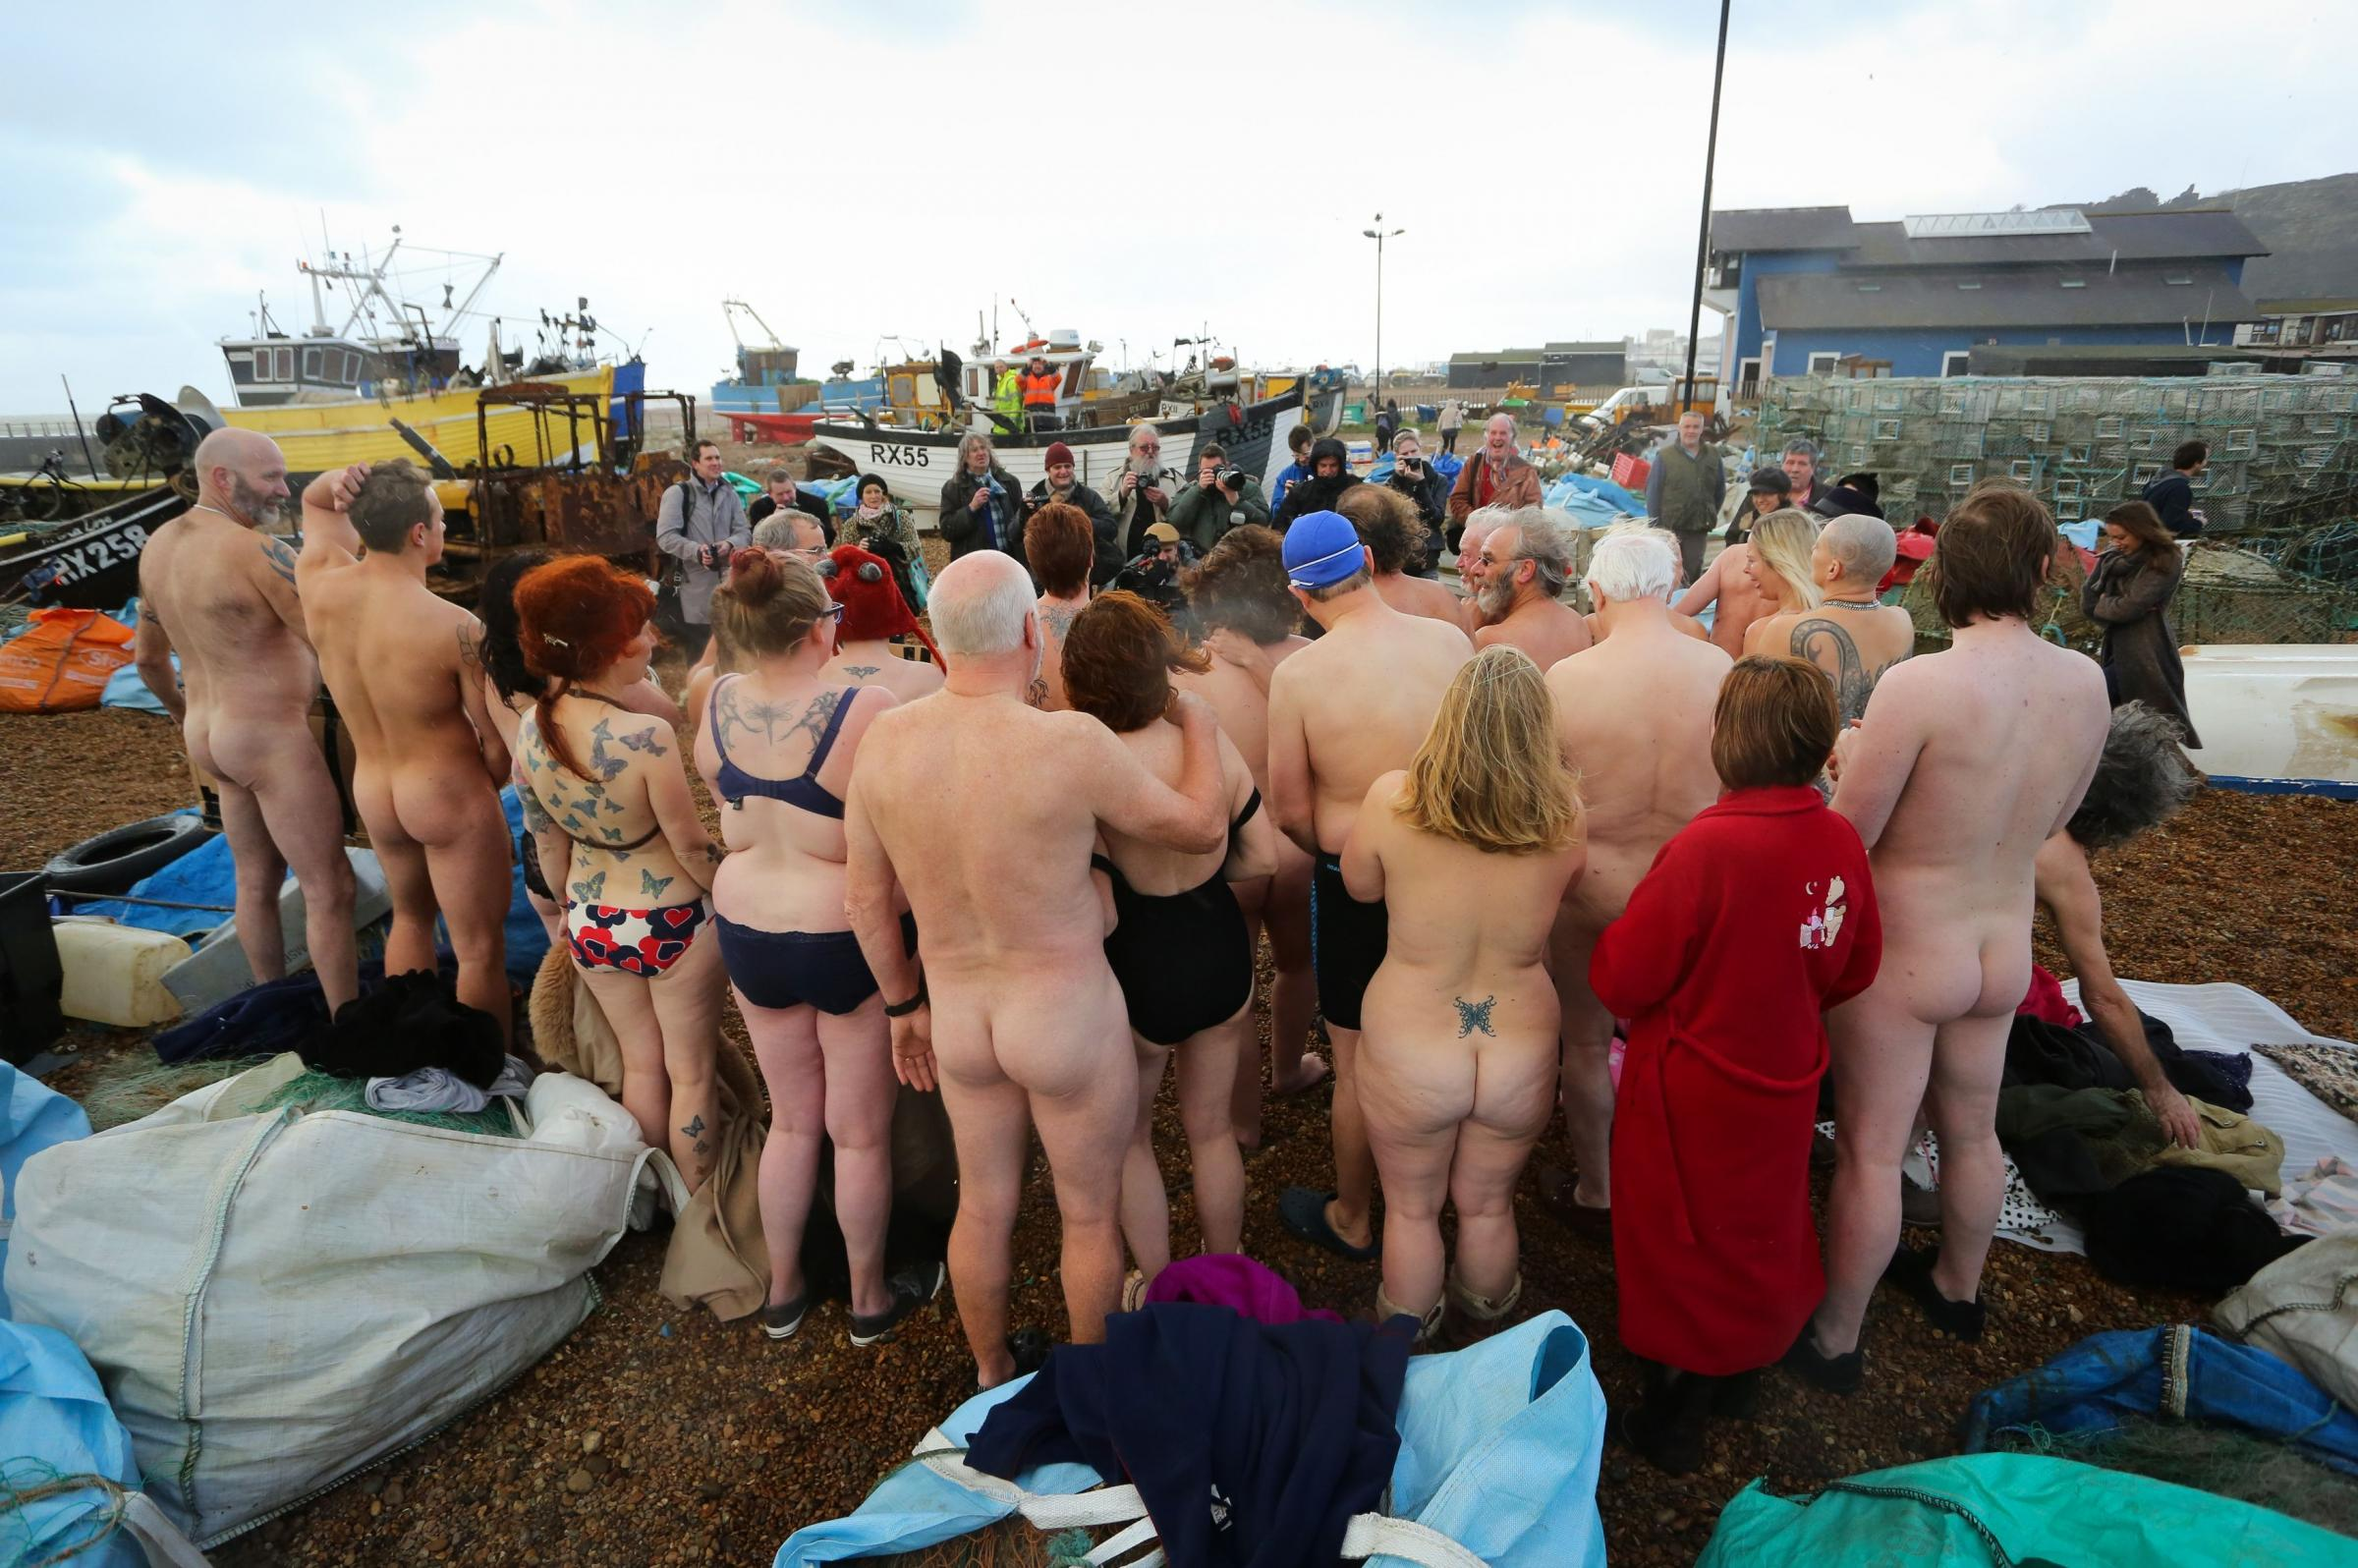 Nudes gather in Hastings in a bid to attract top photographer to the town